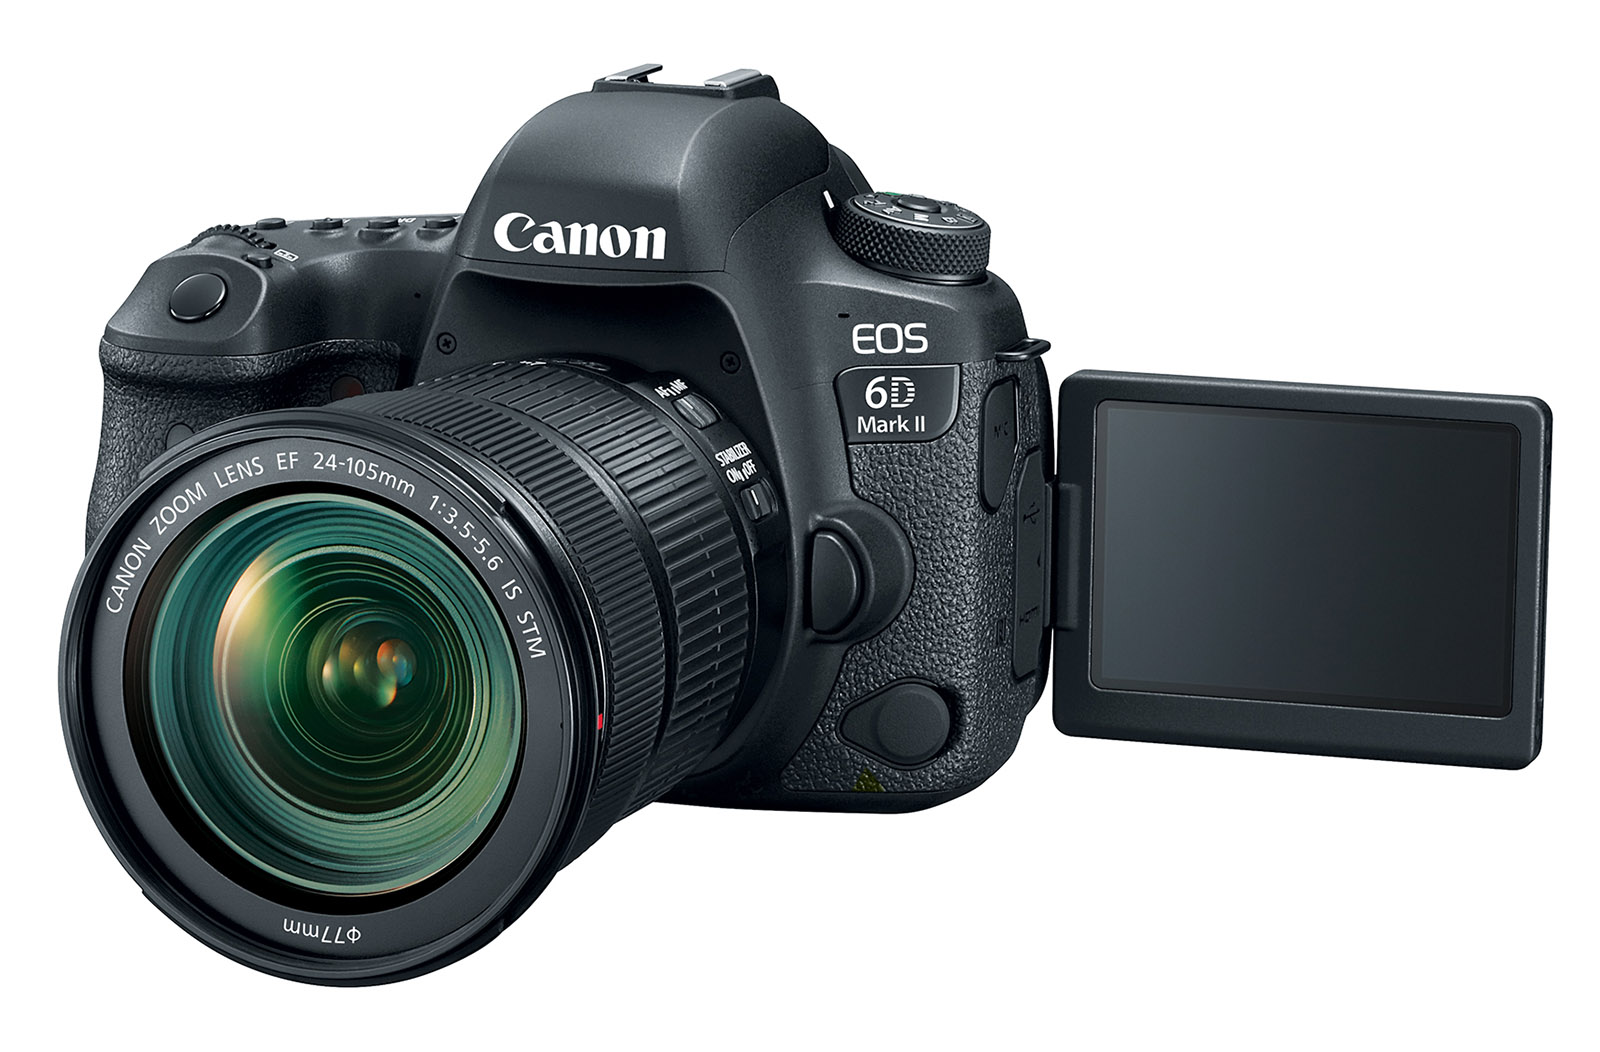 canon 39 s full frame 6d mark ii is a solid upgrade with a catch. Black Bedroom Furniture Sets. Home Design Ideas